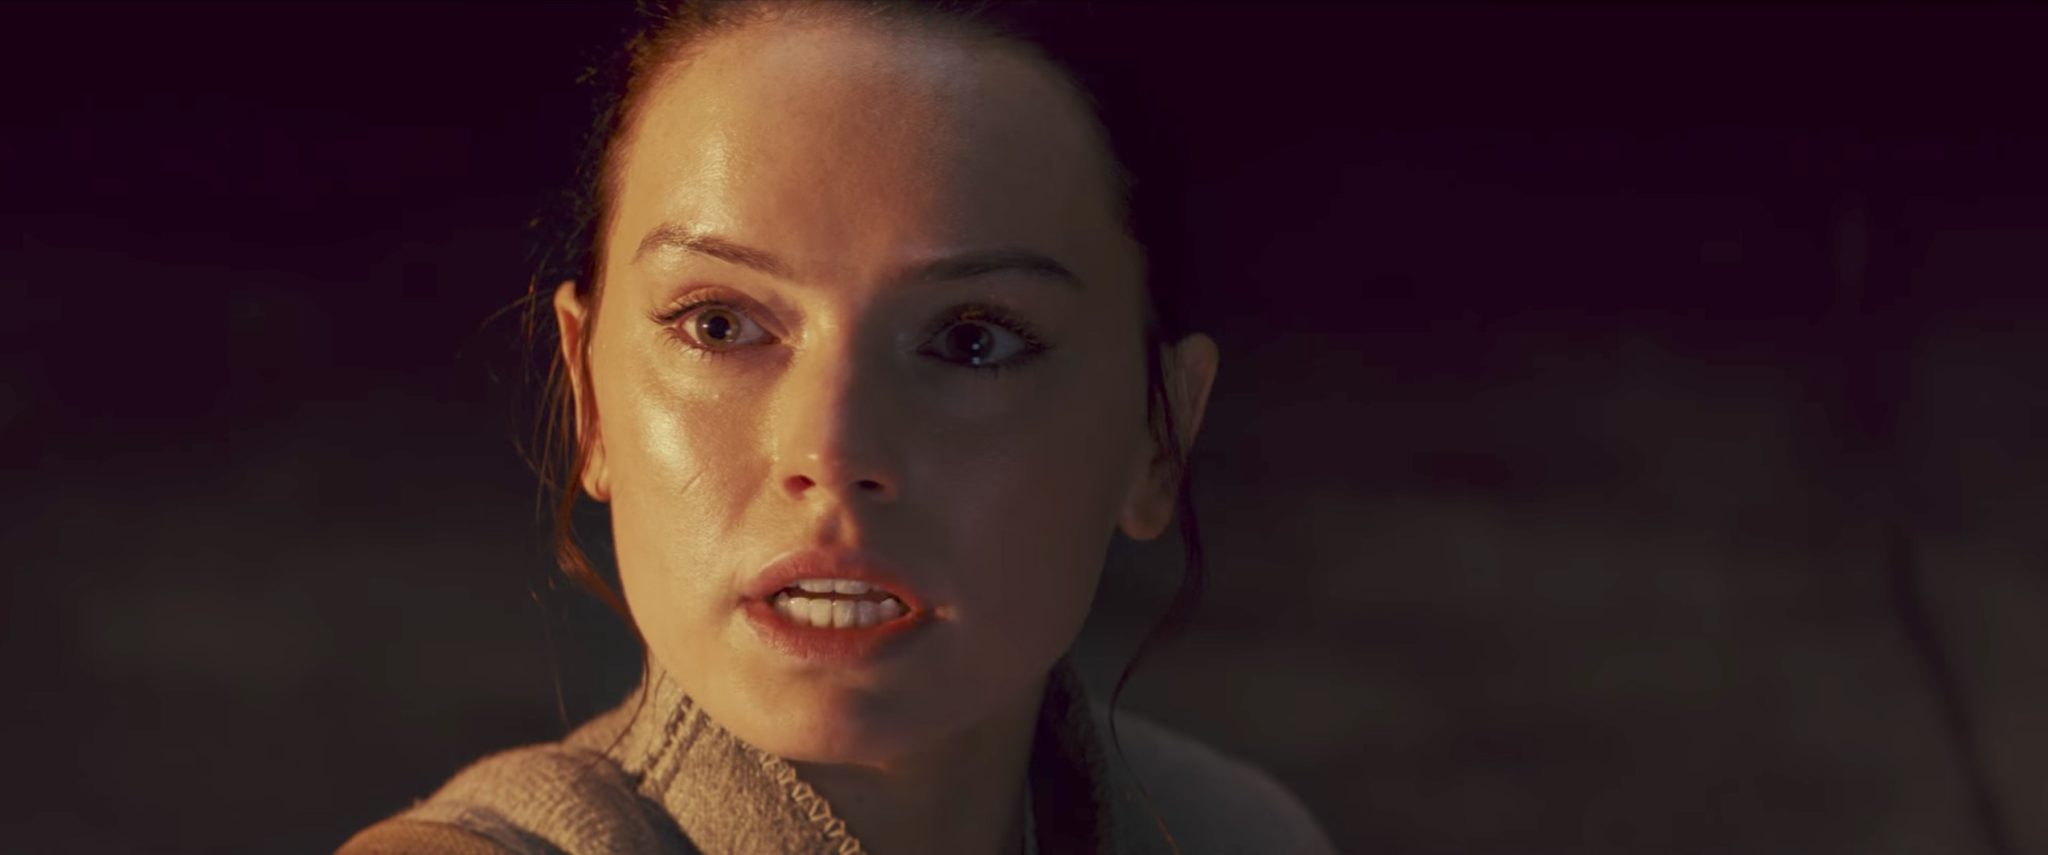 The latest trailer for 'Star Wars: The Last Jedi' is awe-inspiring